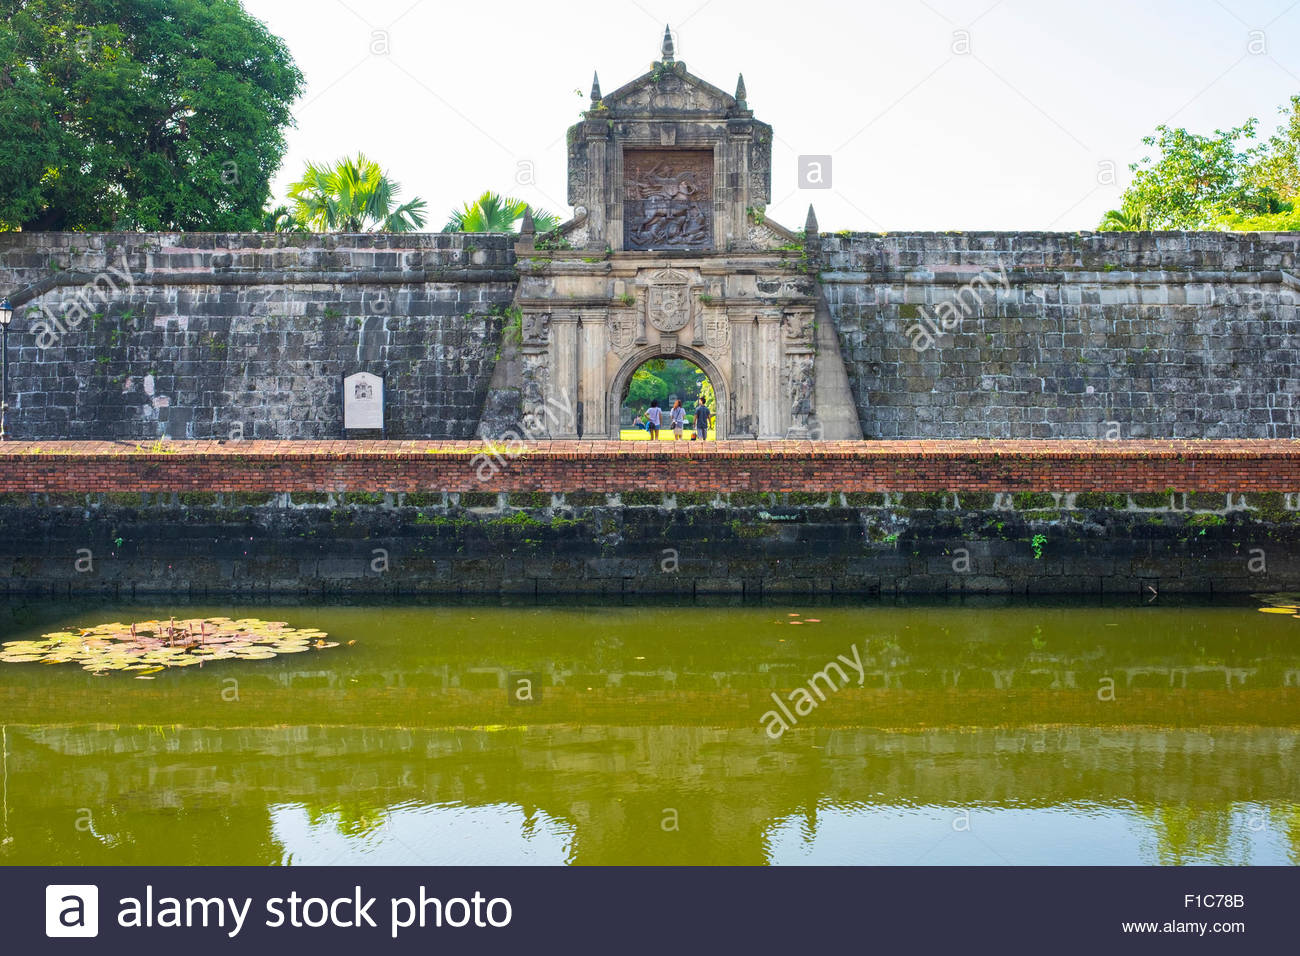 Reconstructed main gate entrance to Fort Santiago, Intramuros, Manila, National Capital Region, Philippines - Stock Image